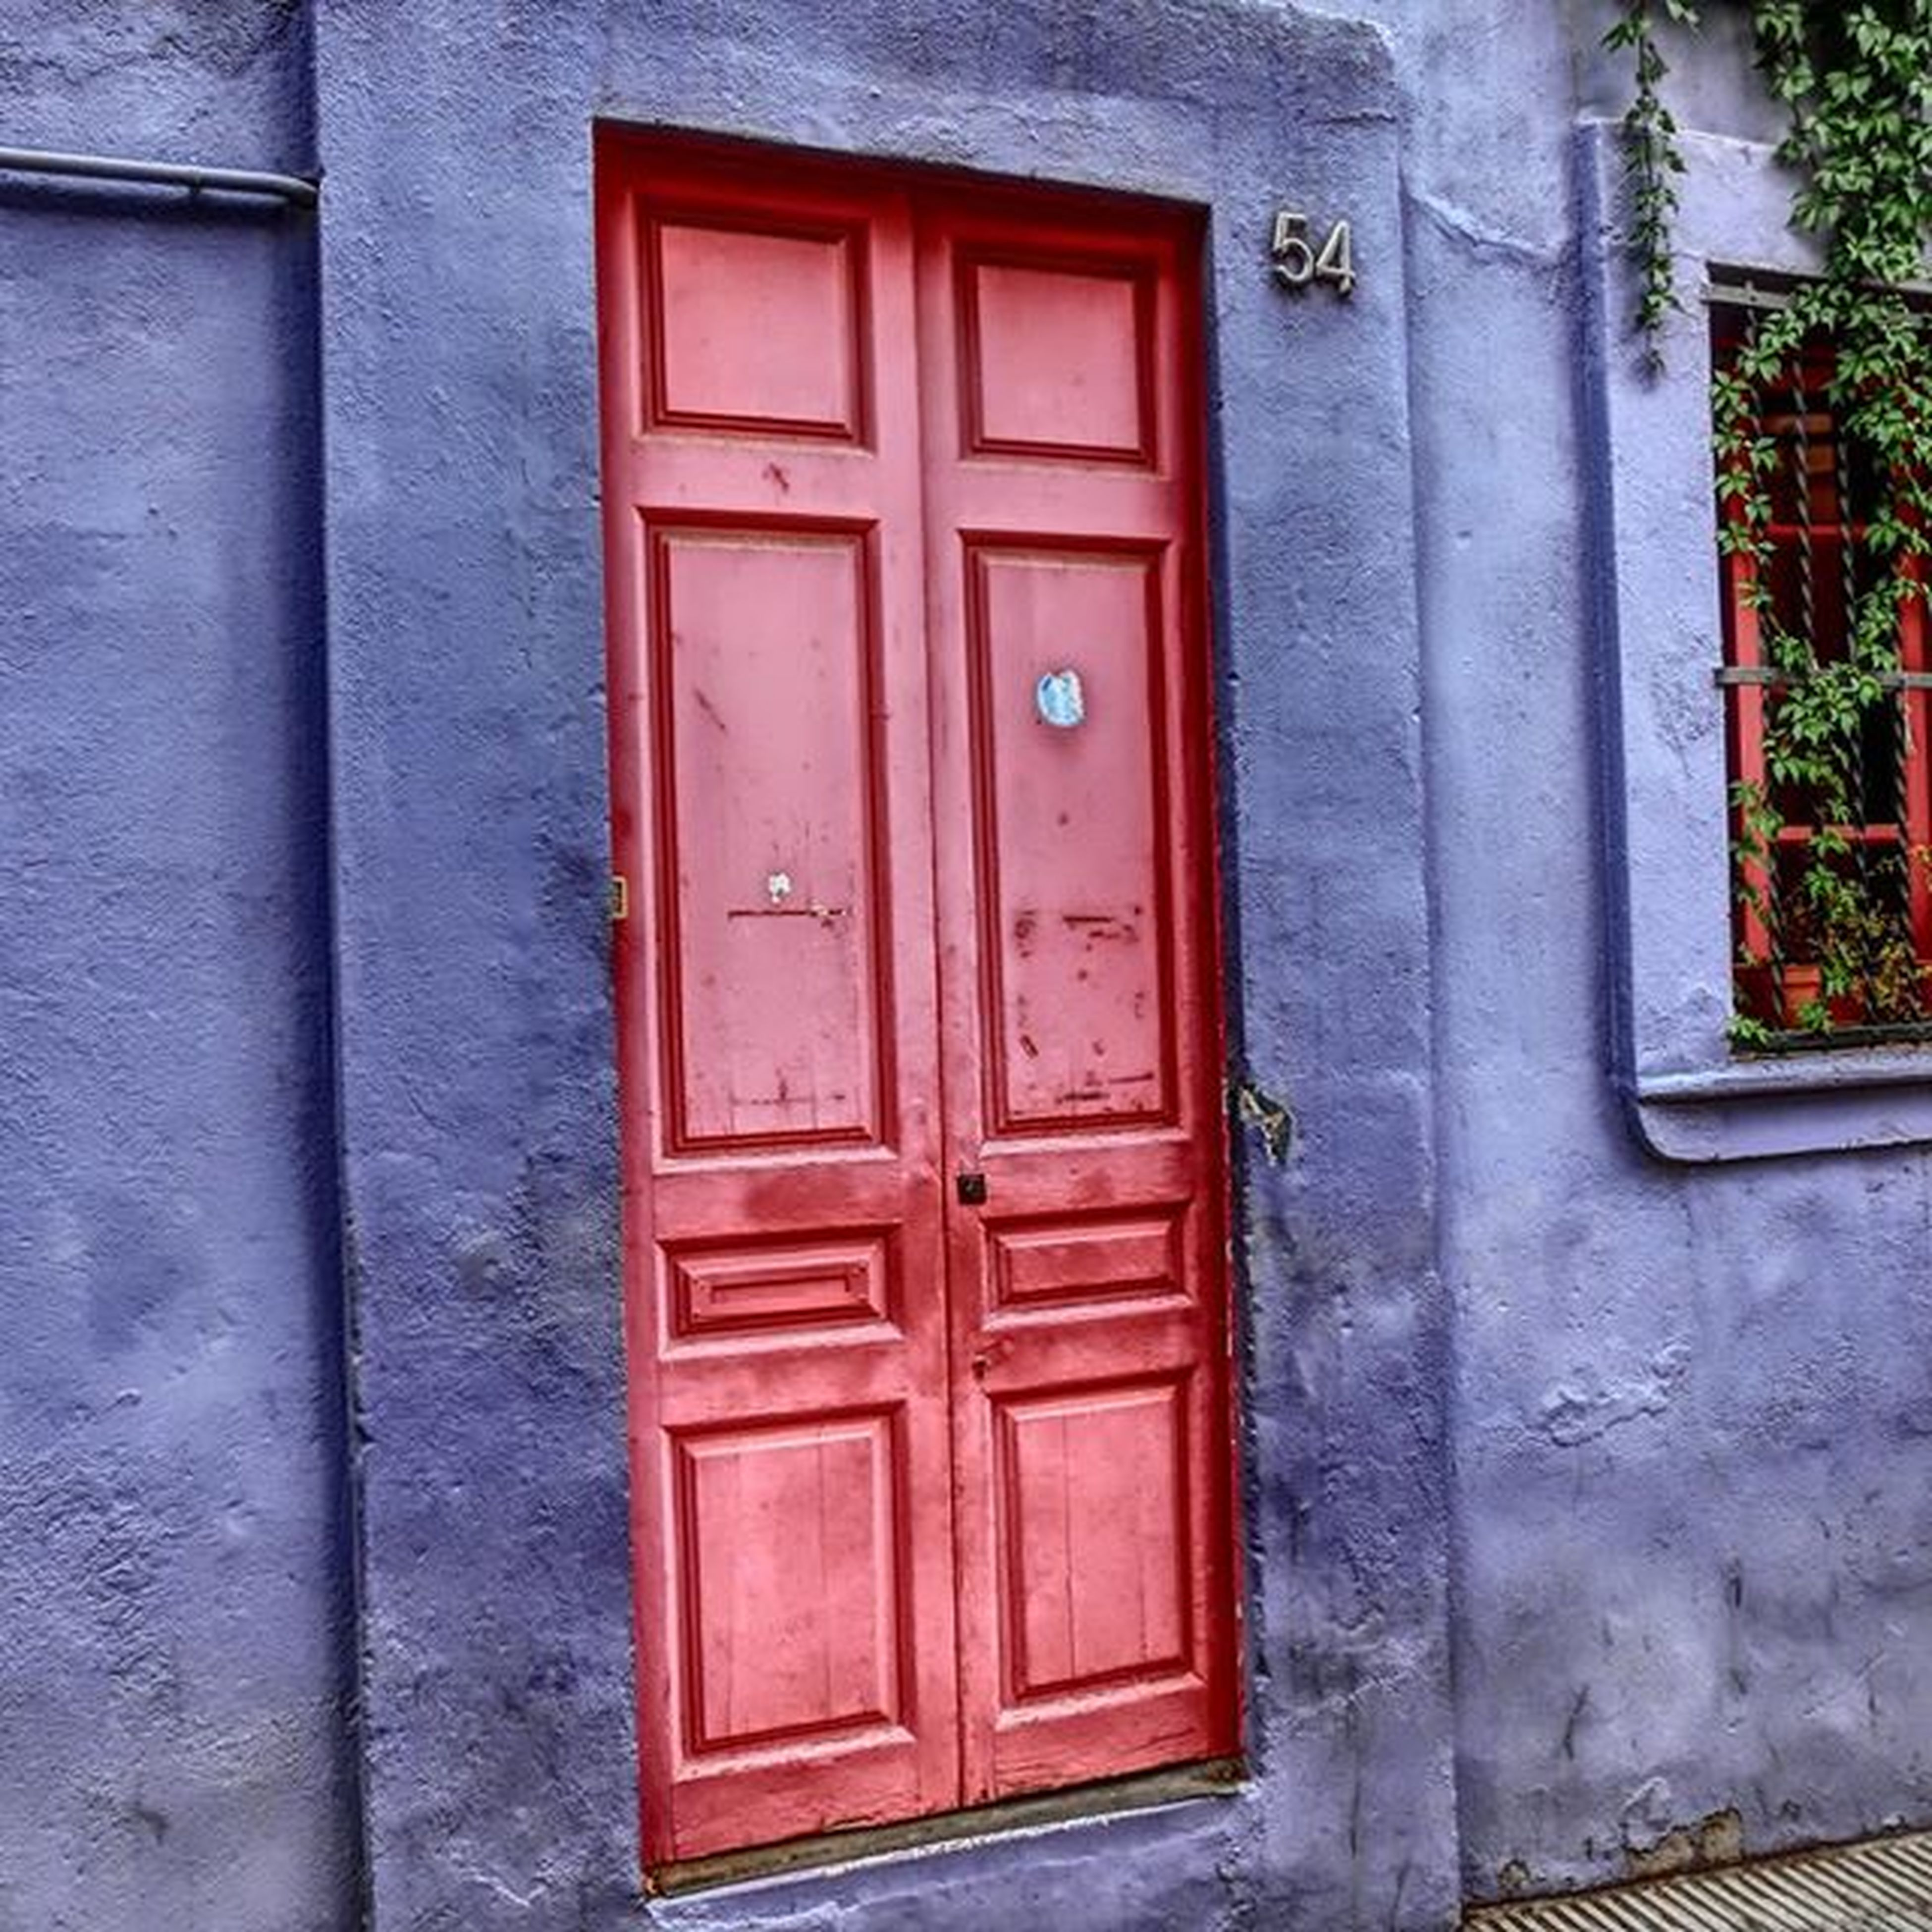 door, closed, building exterior, built structure, architecture, safety, protection, red, security, house, entrance, window, wood - material, outdoors, residential structure, day, wall - building feature, old, wooden, closed door